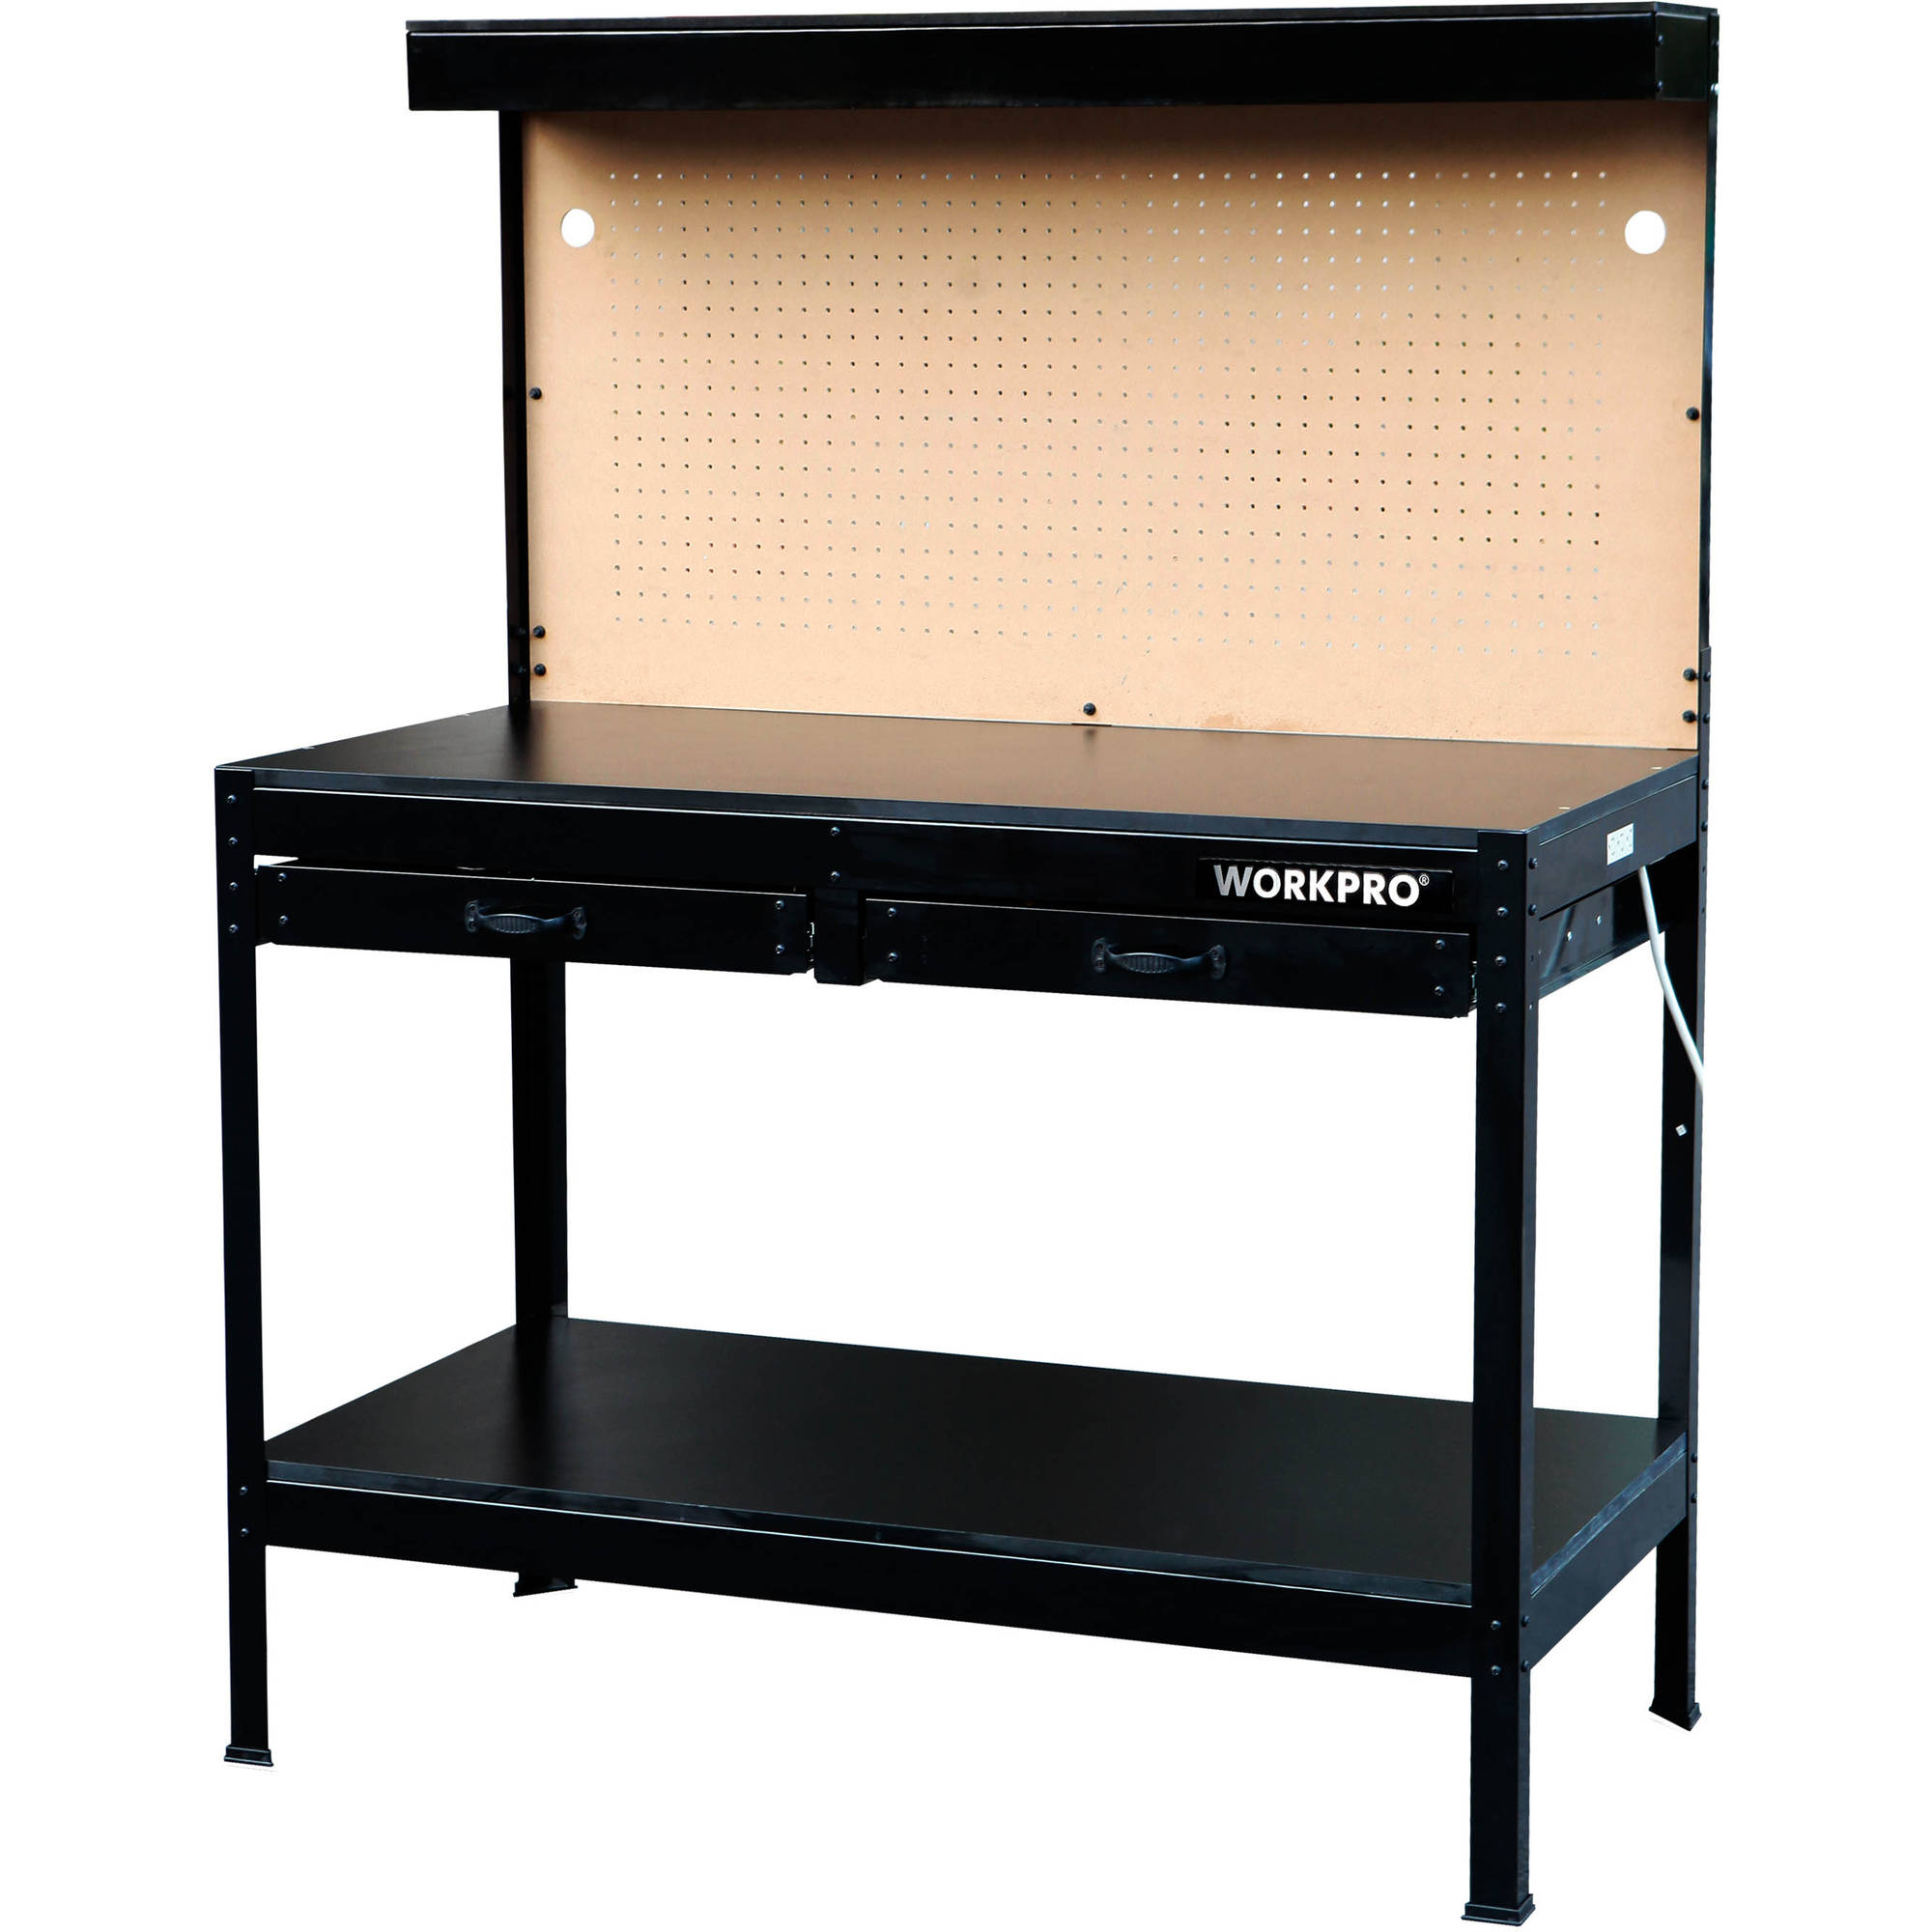 The Workpro Multi Purpose Workbench With Work Light Walmart